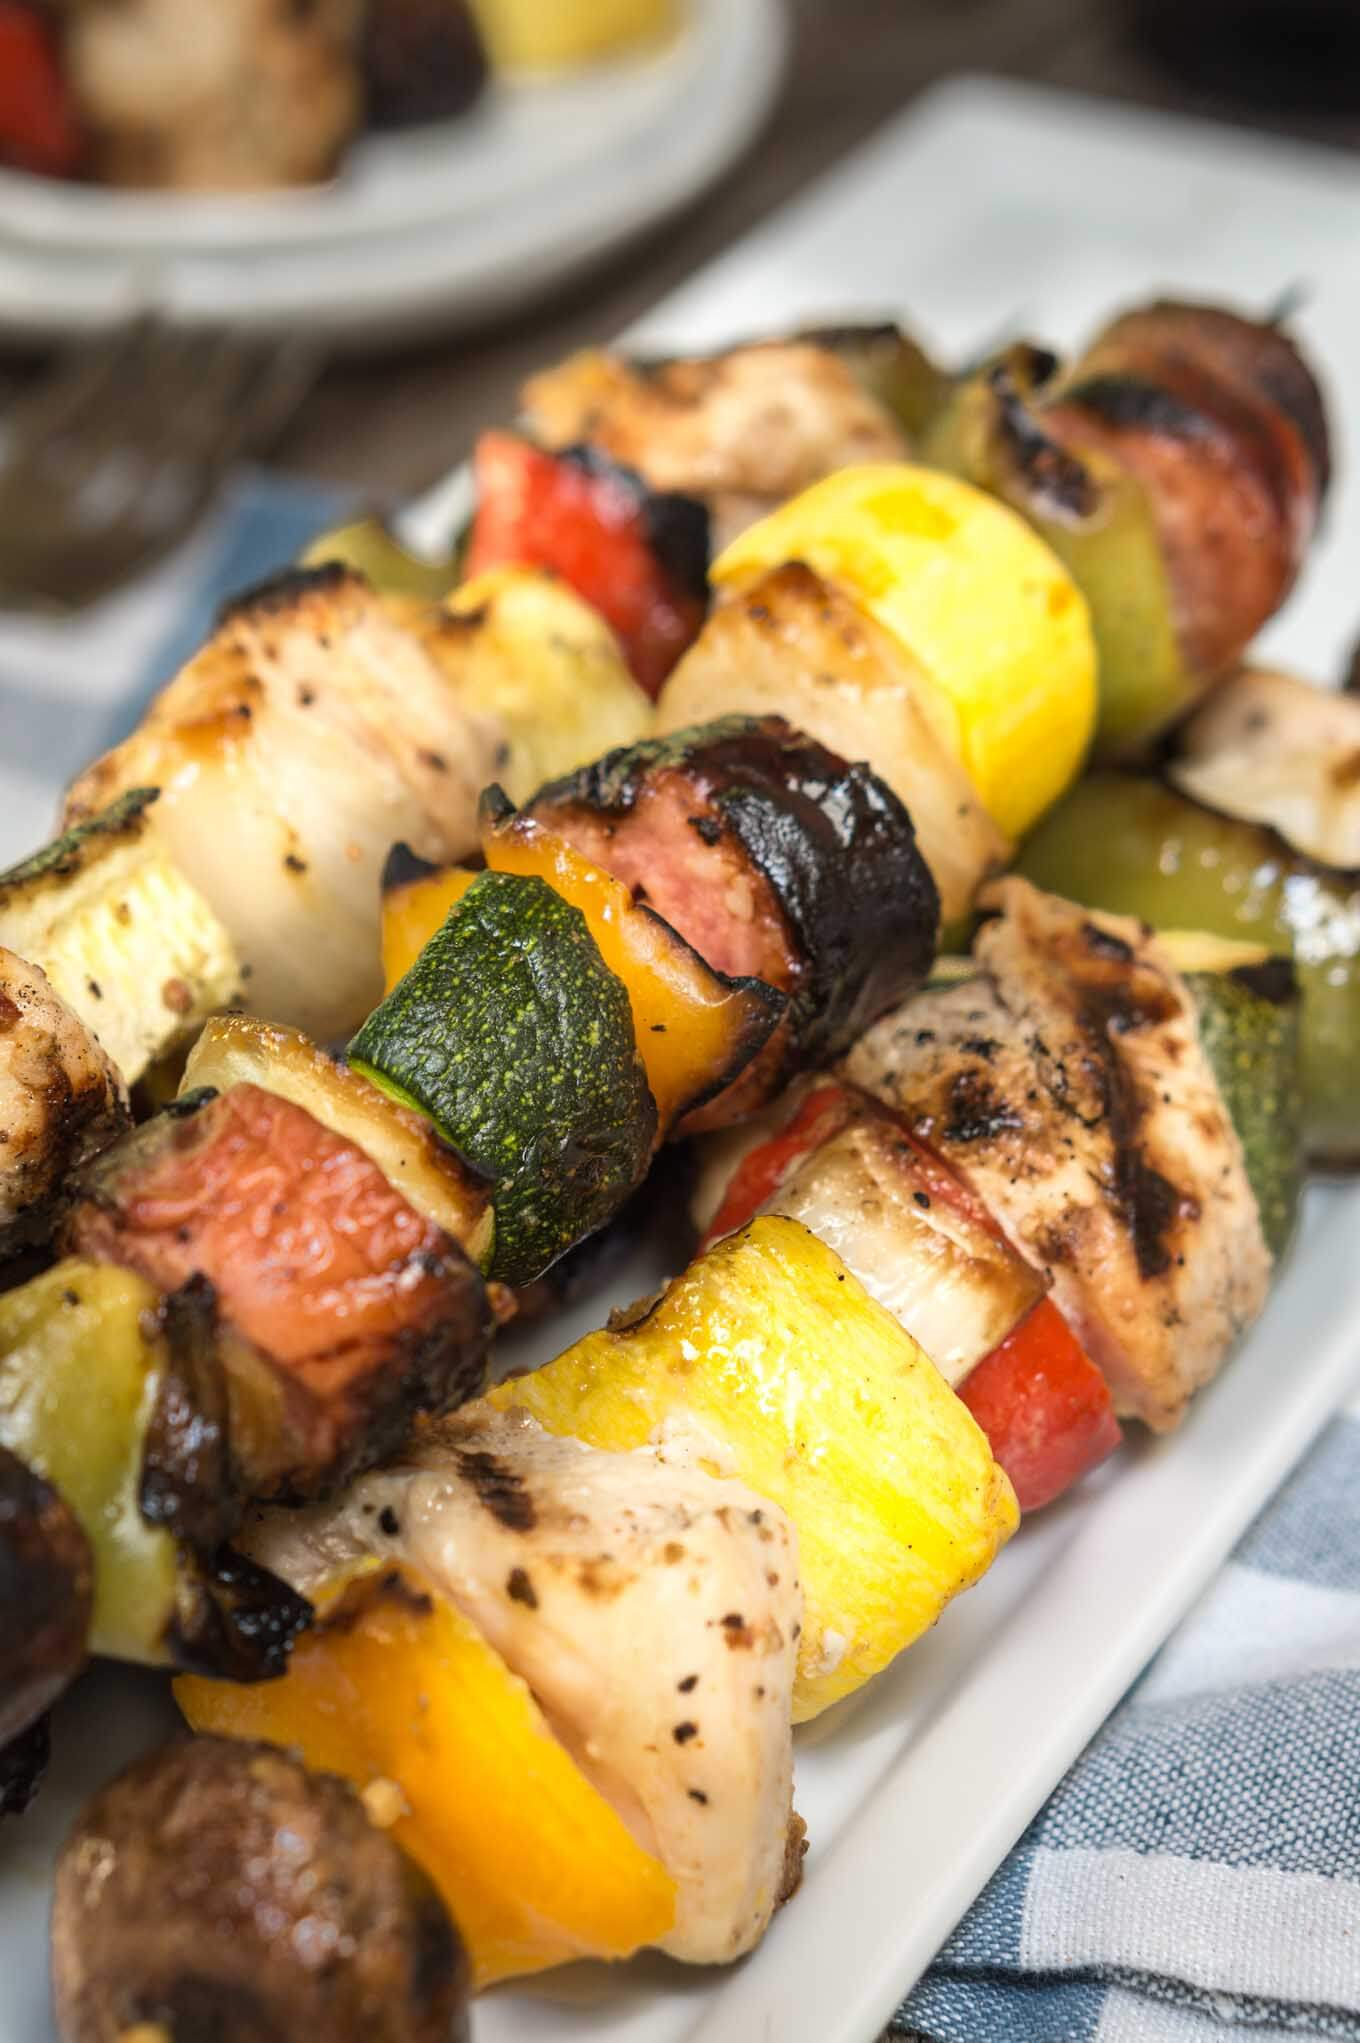 A pile of Shish Kabobs filled with slices of squash, tomatoes, mushrooms, peppers, and chicken on a white plate over a blue checked tablecloth. Empty plates sit in the background.